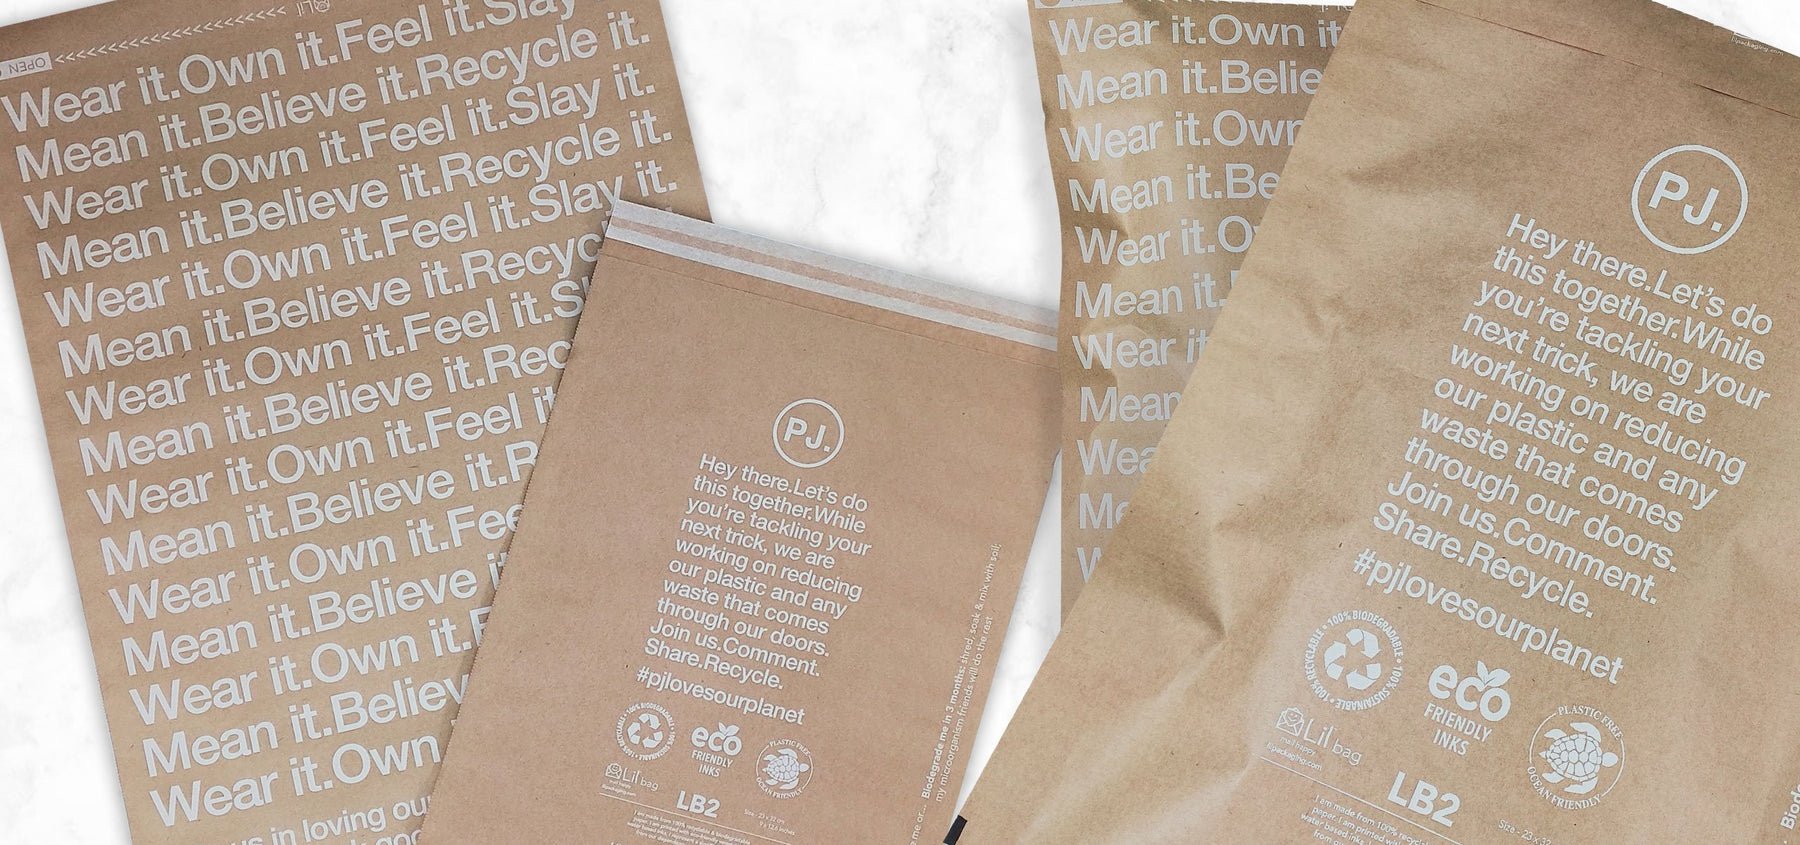 Pole Junkie - How they Boosted Customer Feedback with Eco Packaging